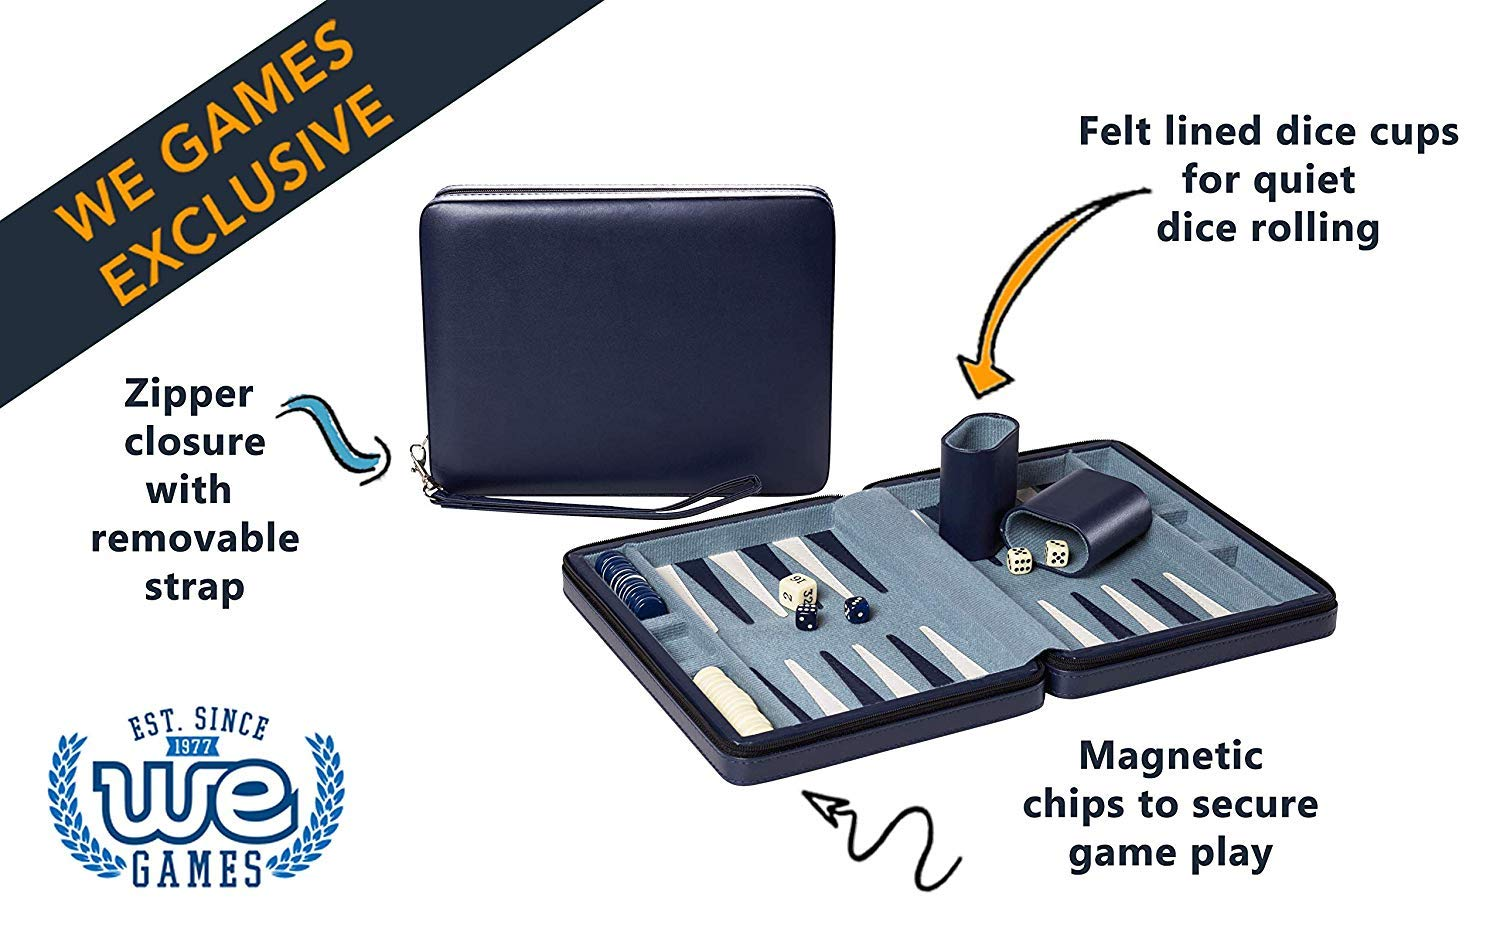 Wood Expressions WE Games Blue Magnetic Backgammon Set with Carrying Strap - Travel Size by WE Games (Image #3)